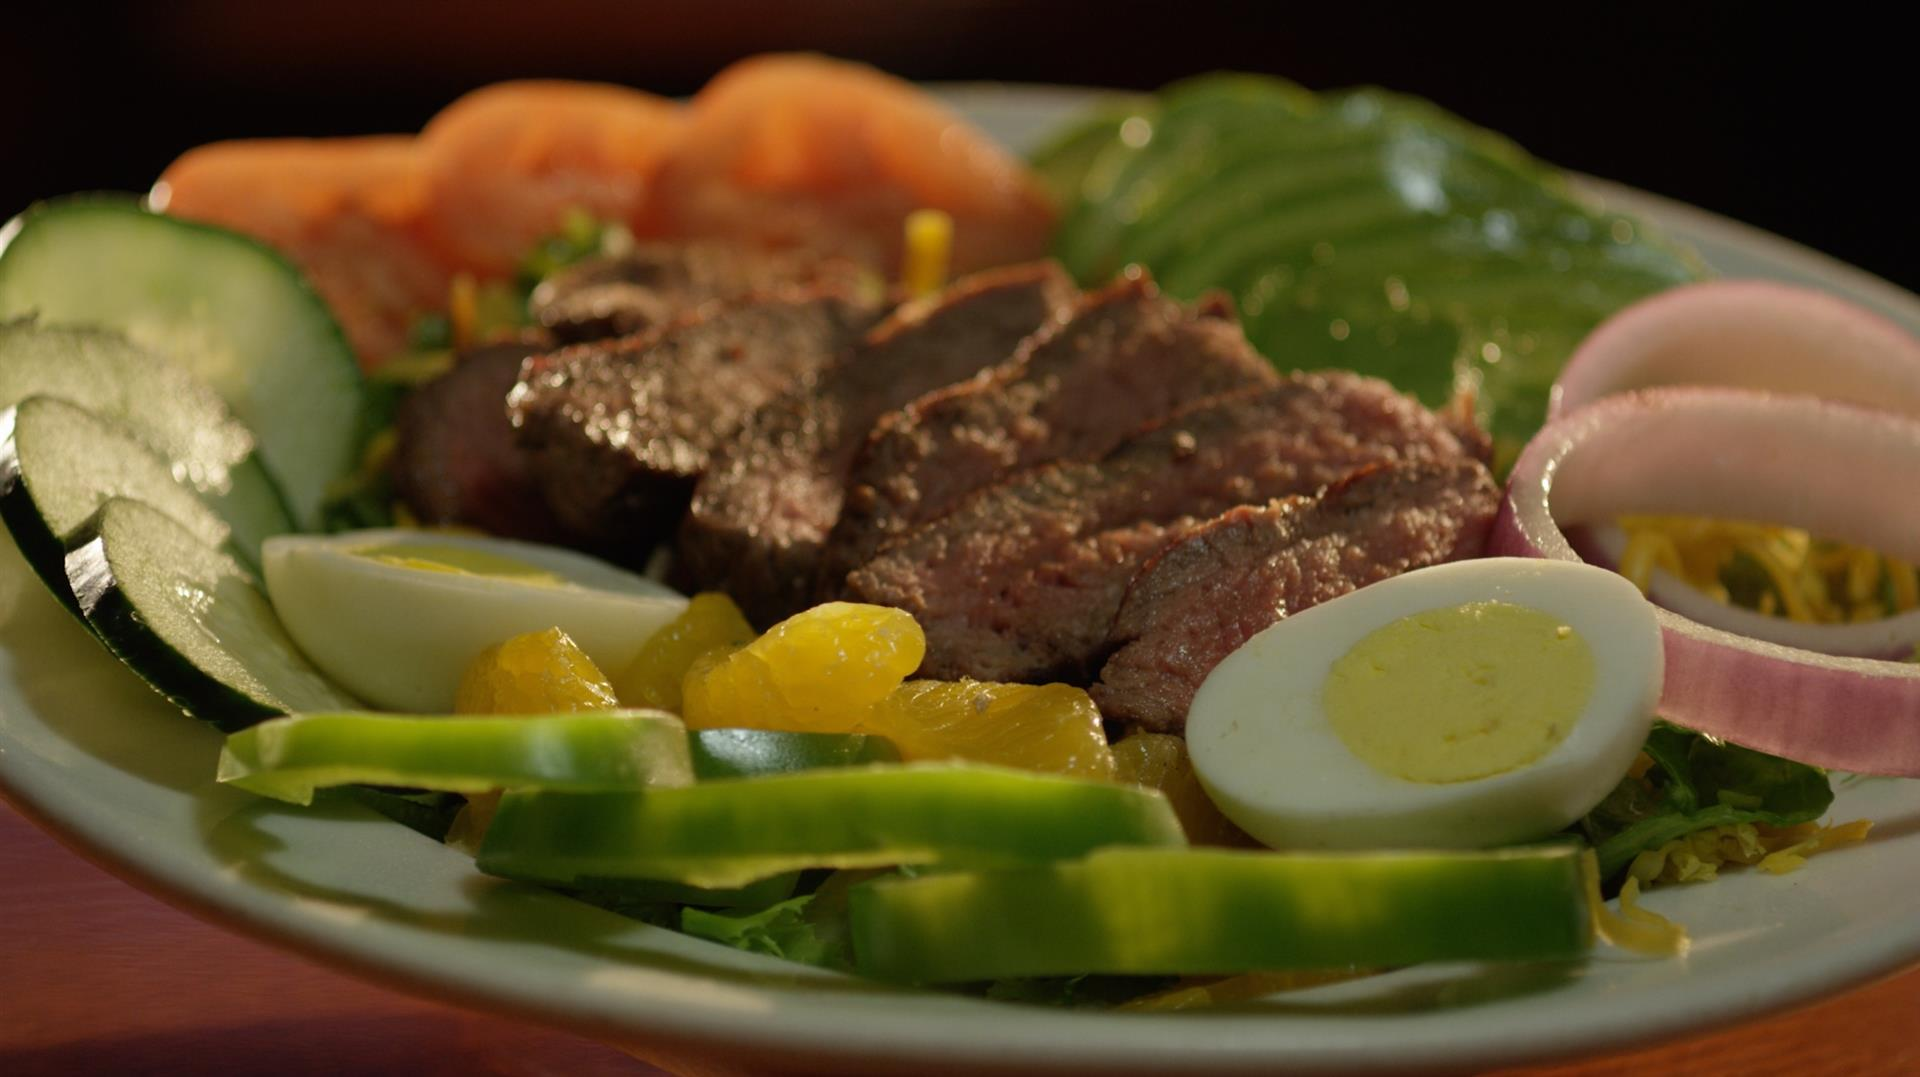 steak salad on a plate with peppers, cucumbers, onions and hard boiled eggs